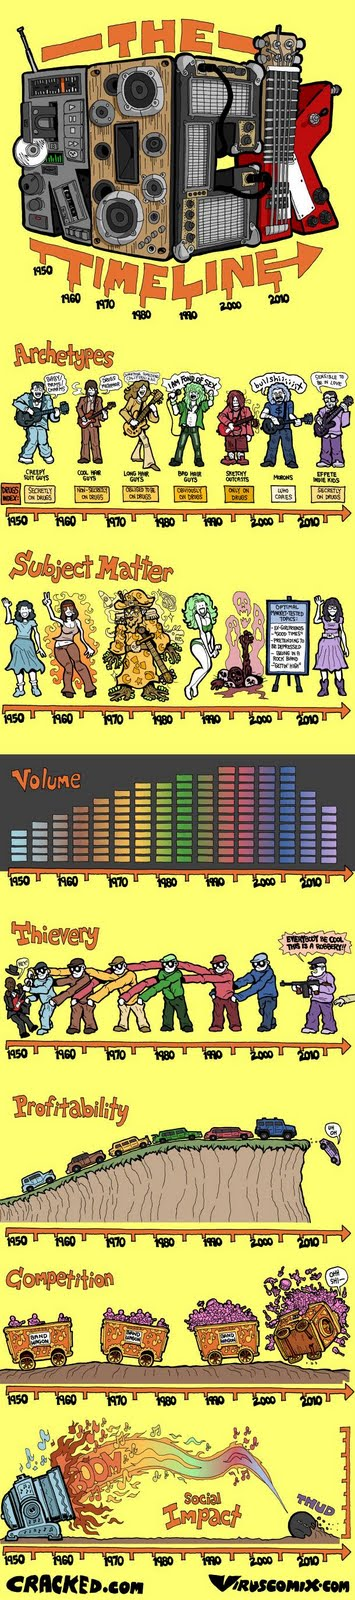 Rock Timeline image from Bobby Owsinski's Music 3.0 blog